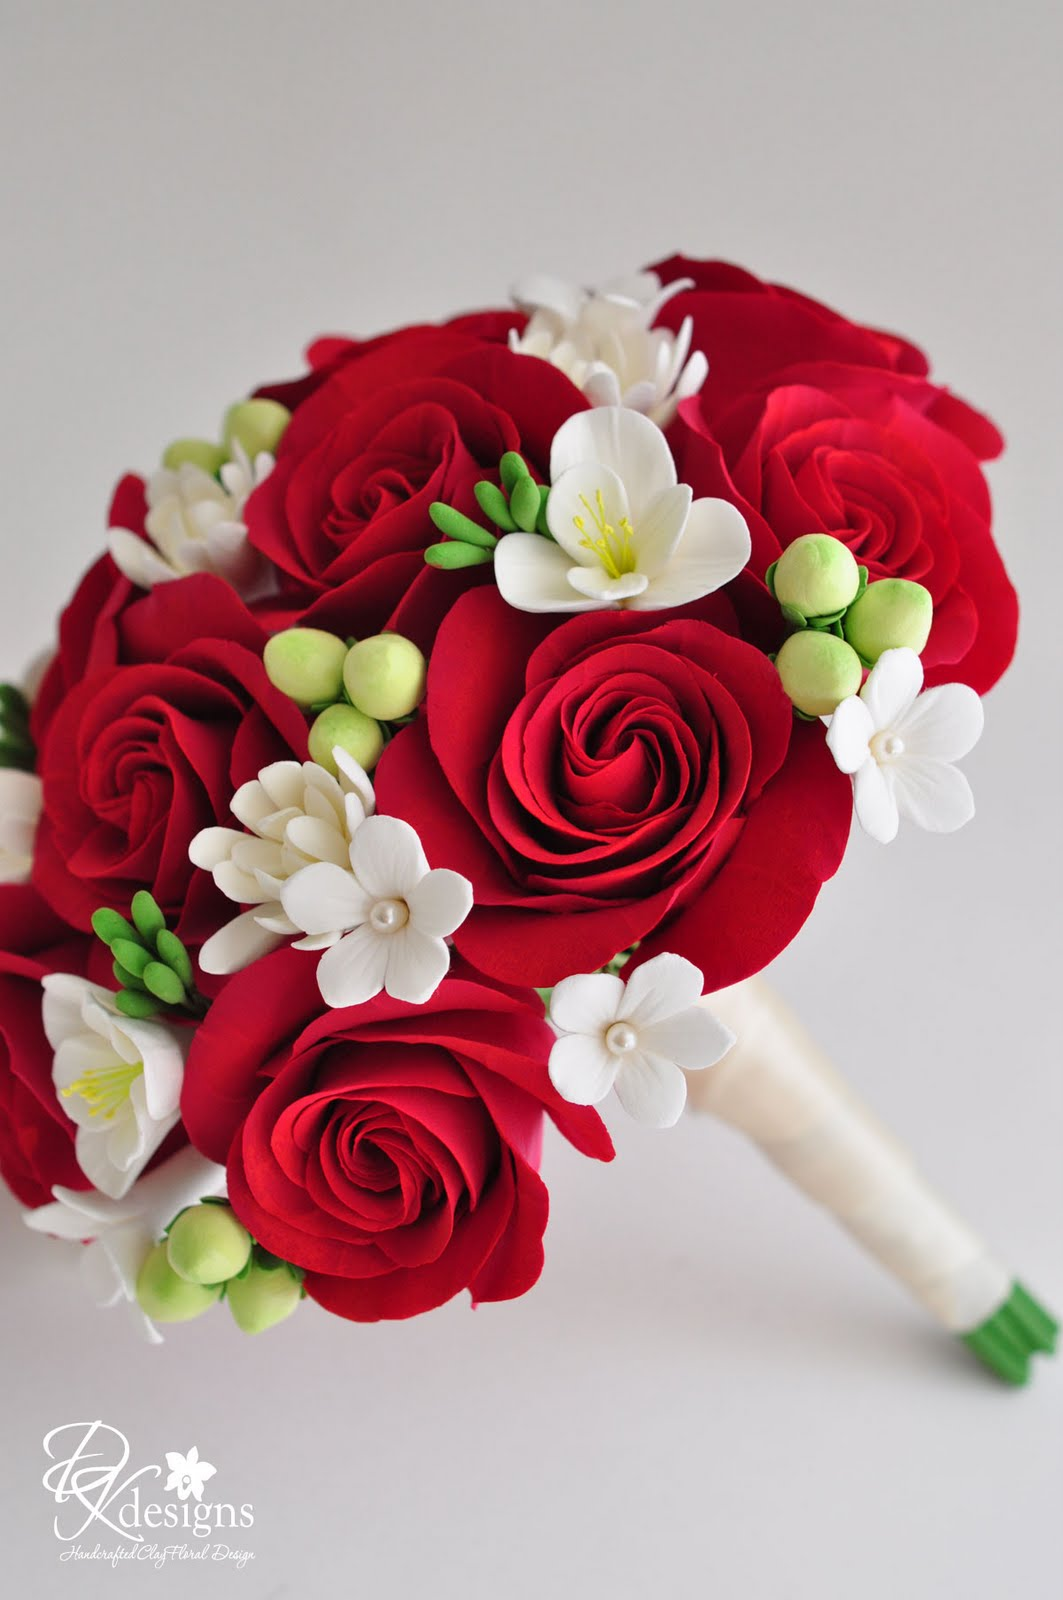 Red roses freesia stephanotis tuberose and hipericum berry red roses freesia stephanotis tuberose and hipericum berry bouquet and boutonniere izmirmasajfo